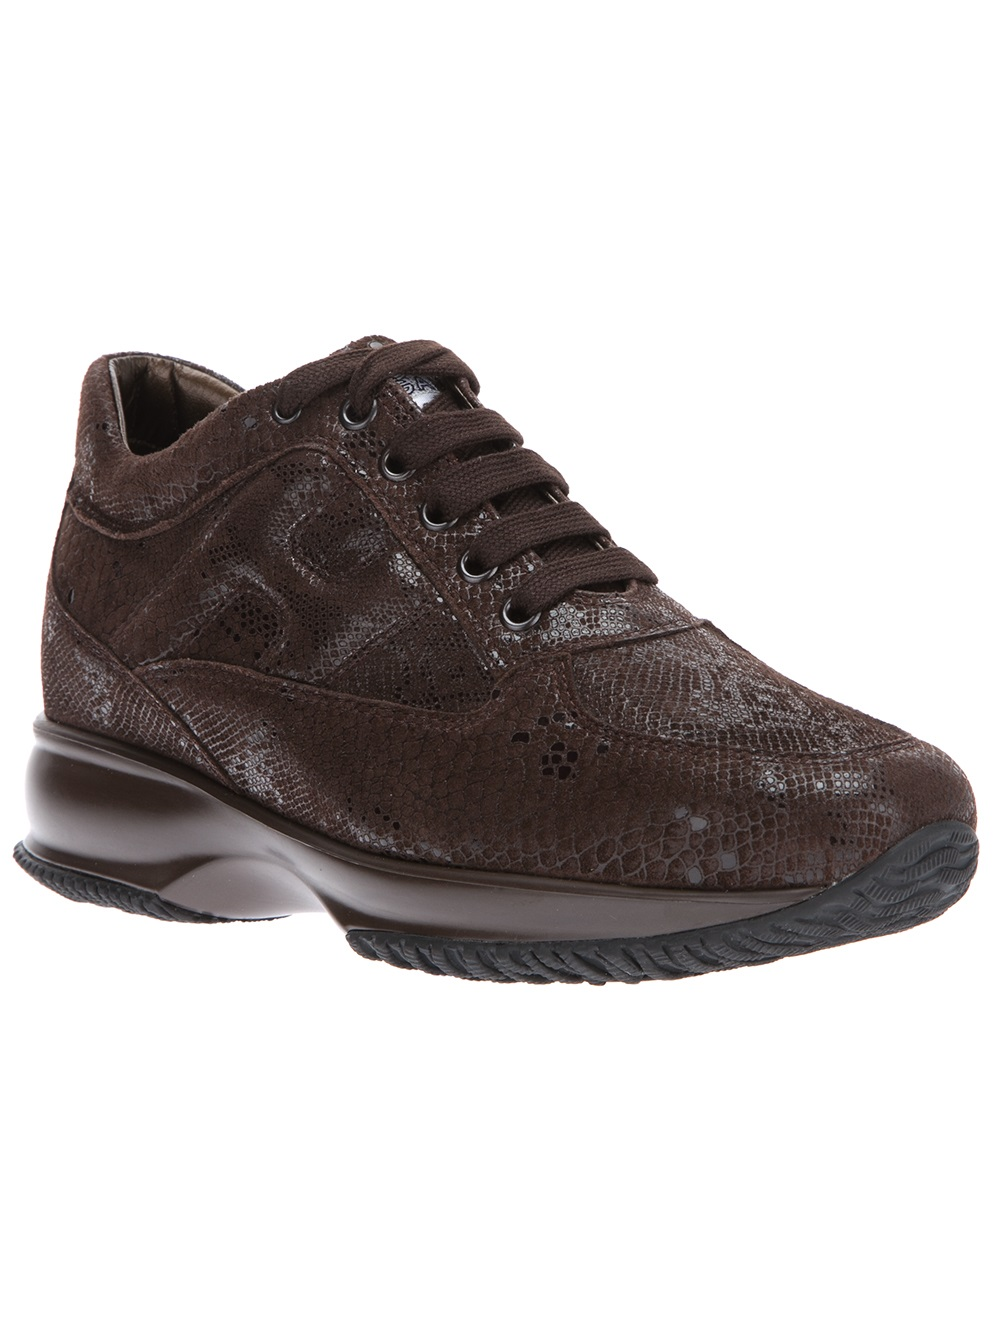 Nike Chaussures Coin Pompes EE7GjR7P